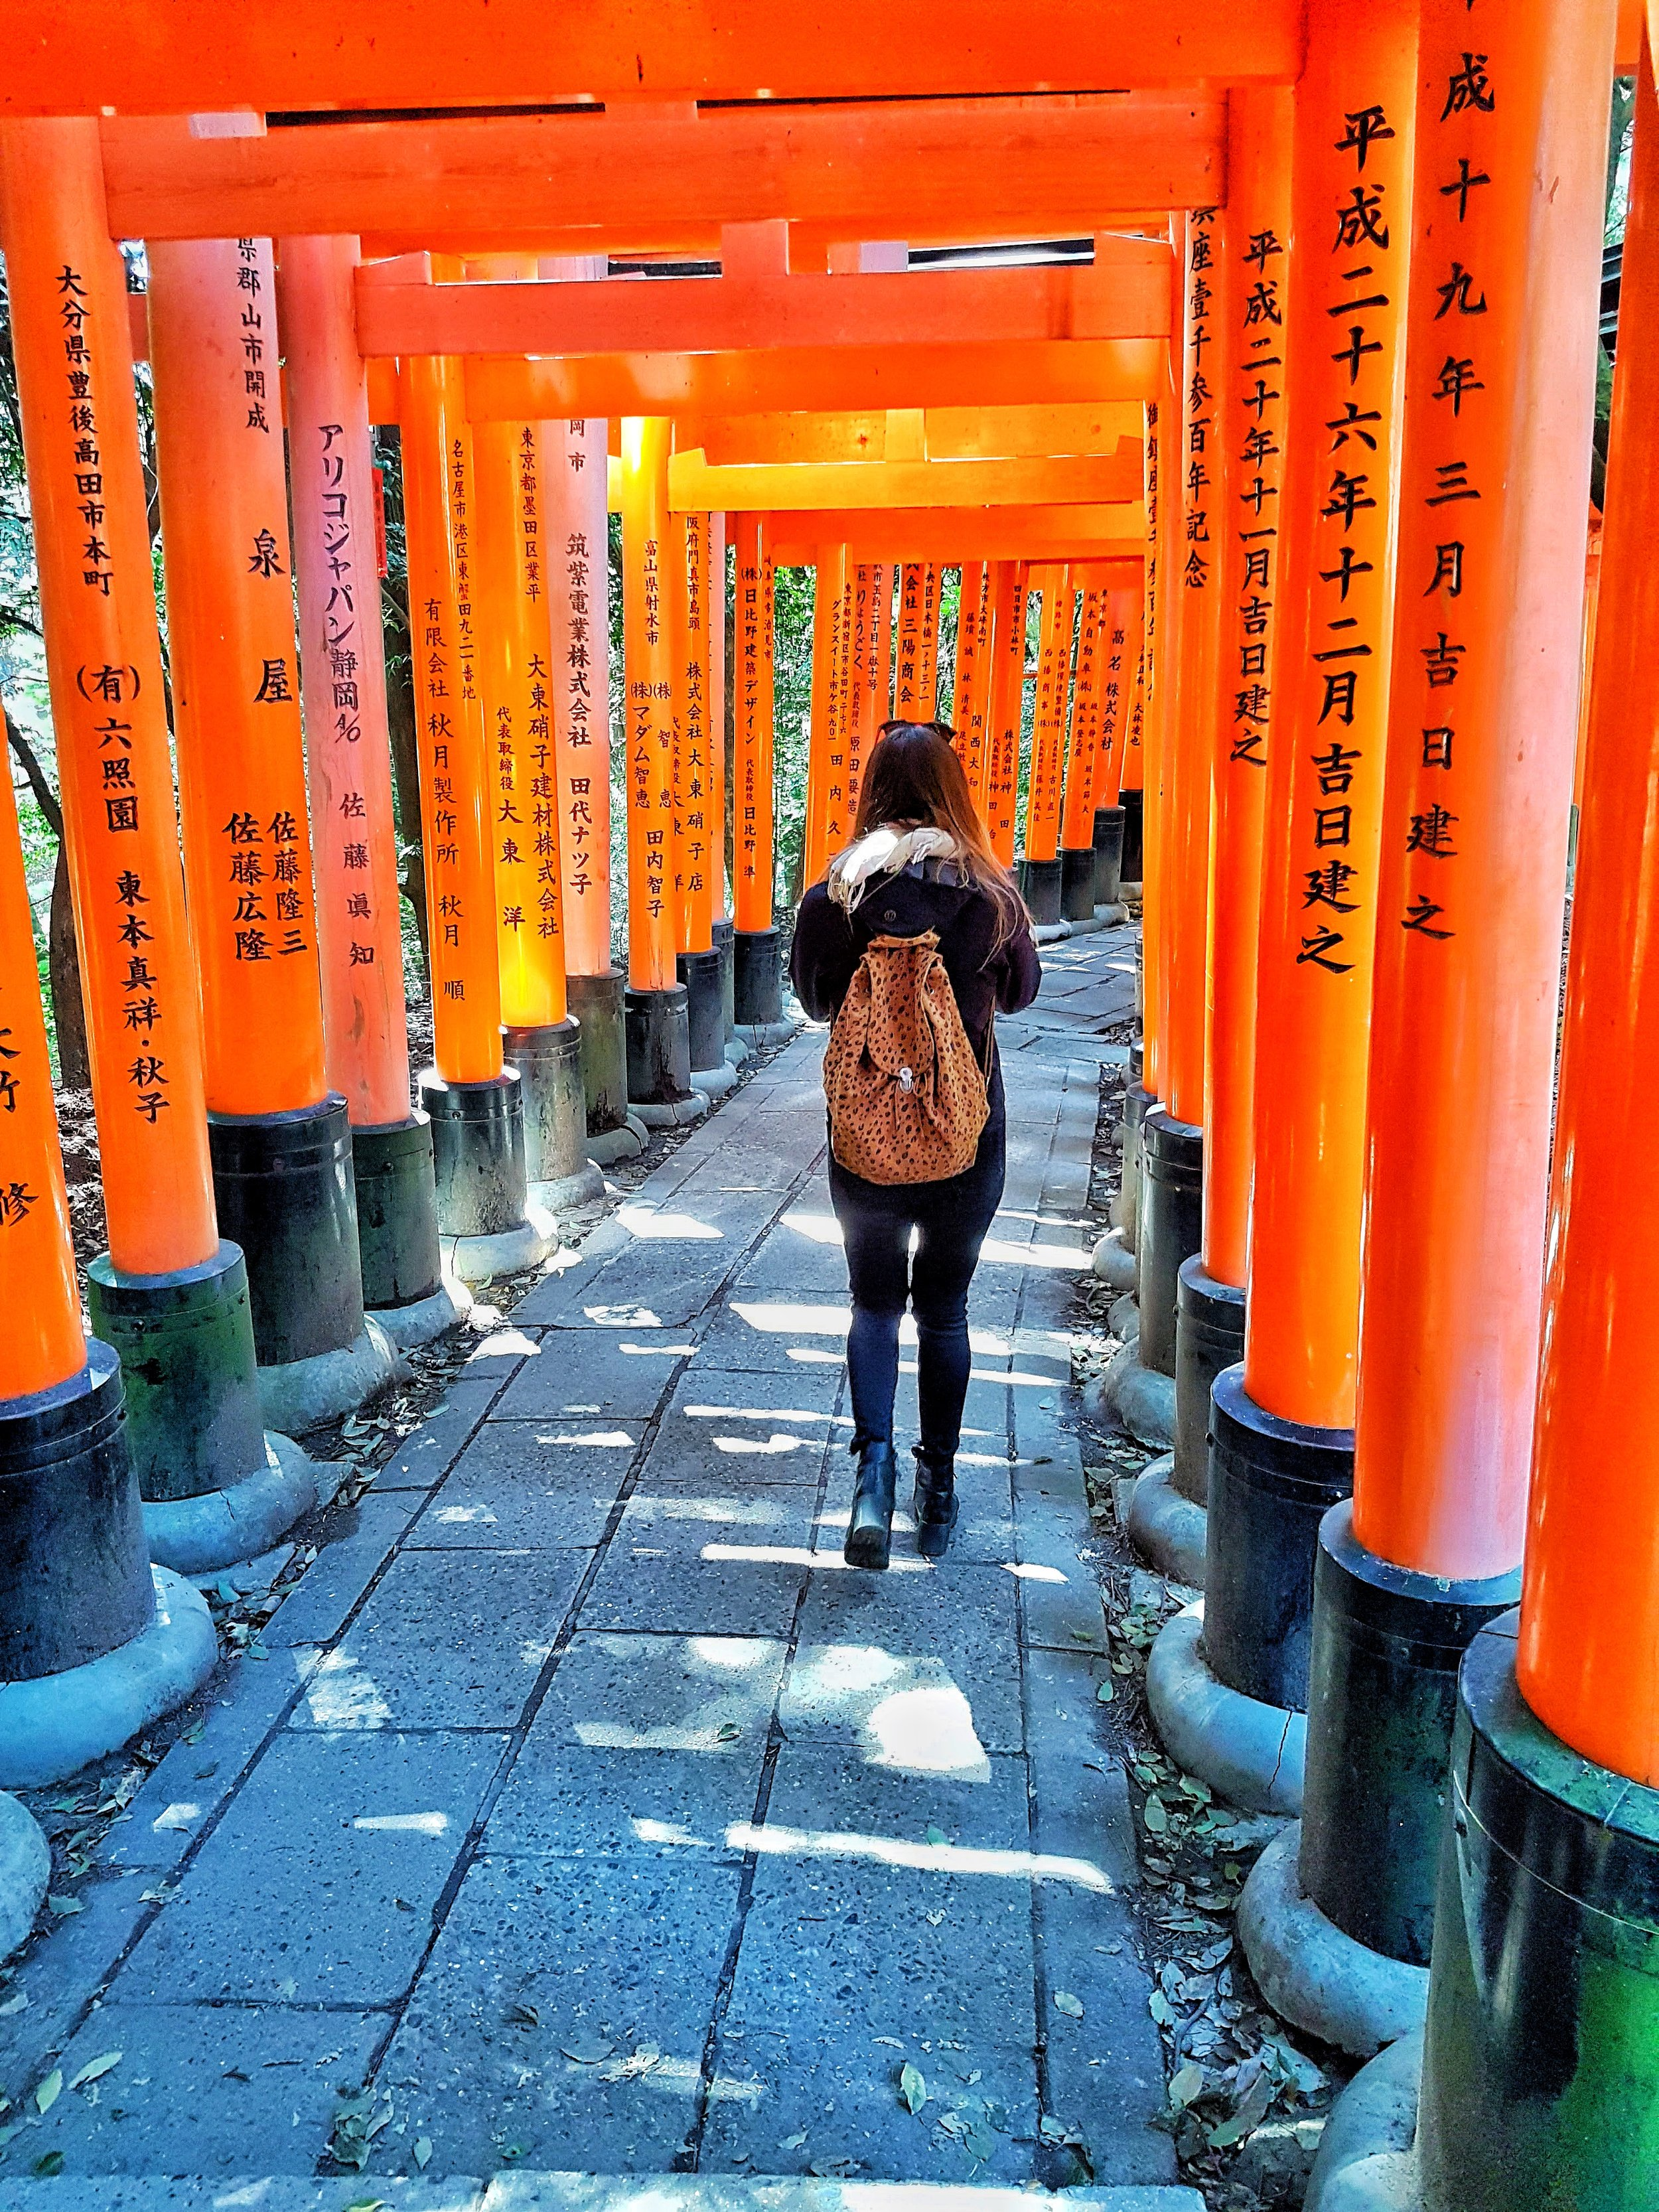 The Fushimi Inari-Taisha Shrine is said to have over 10,000 gates and they really are this orange!